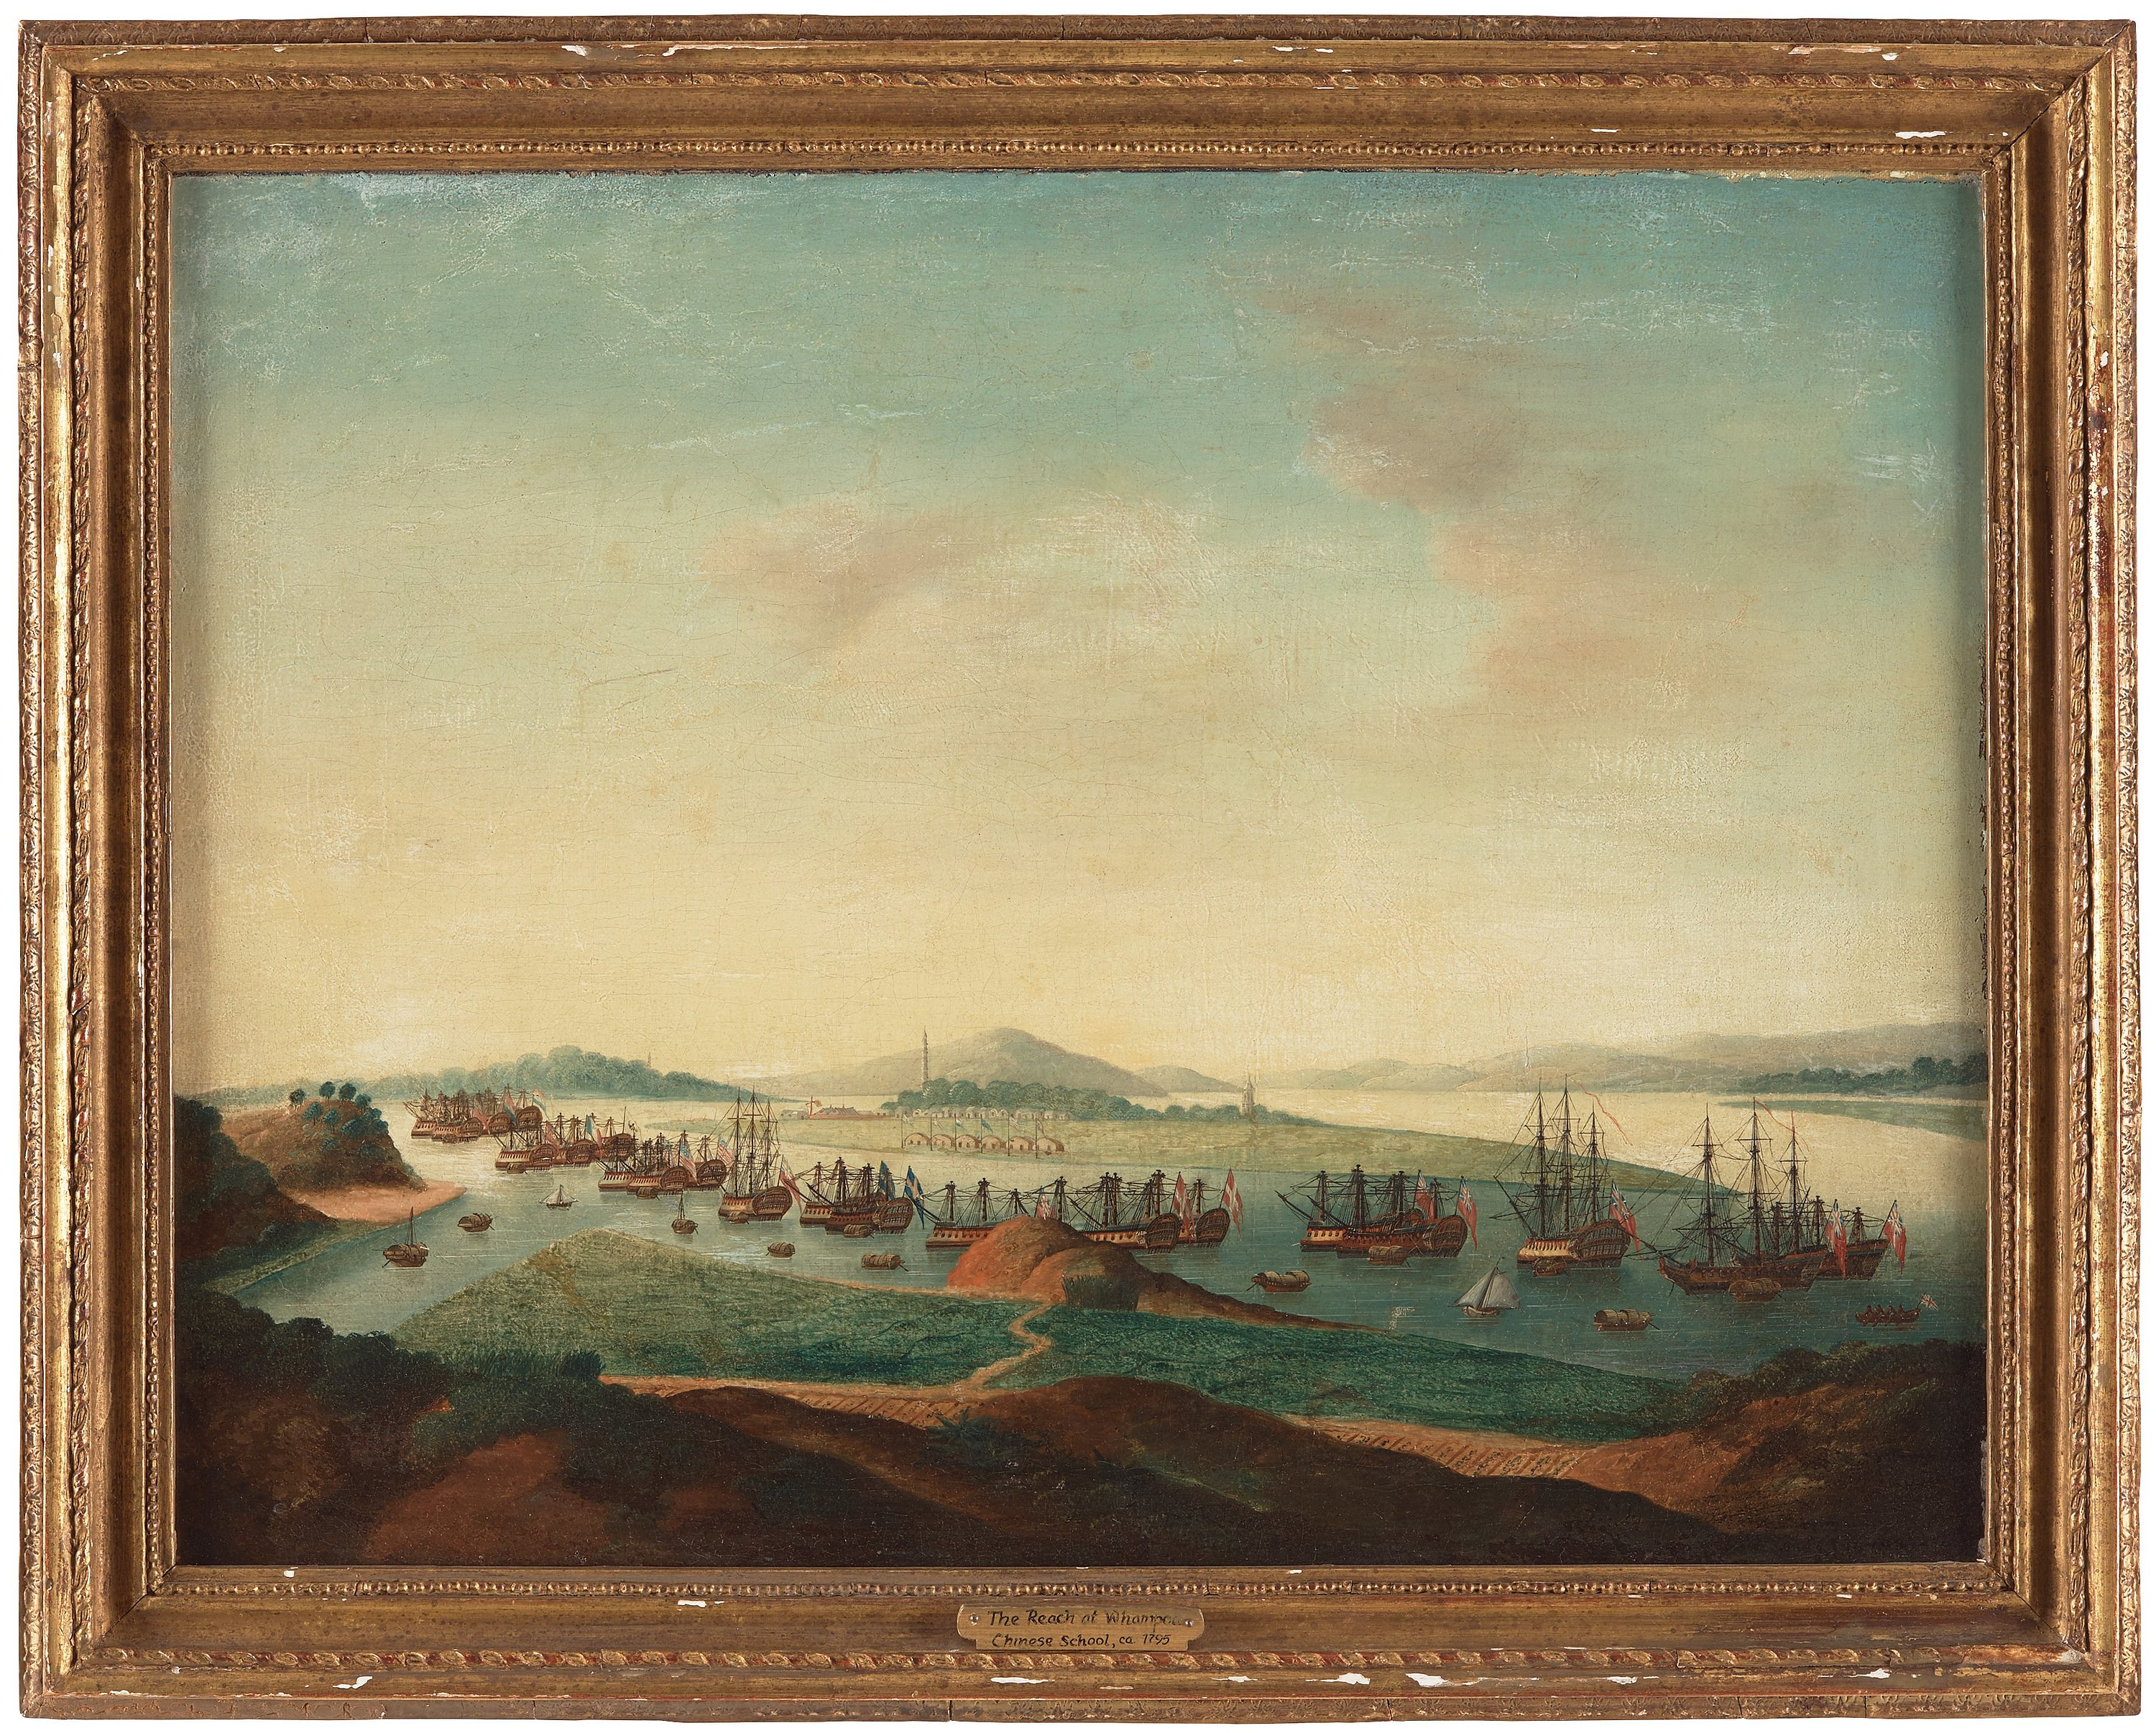 a china trade oil painting of whampoa anchorage by an unknown artist